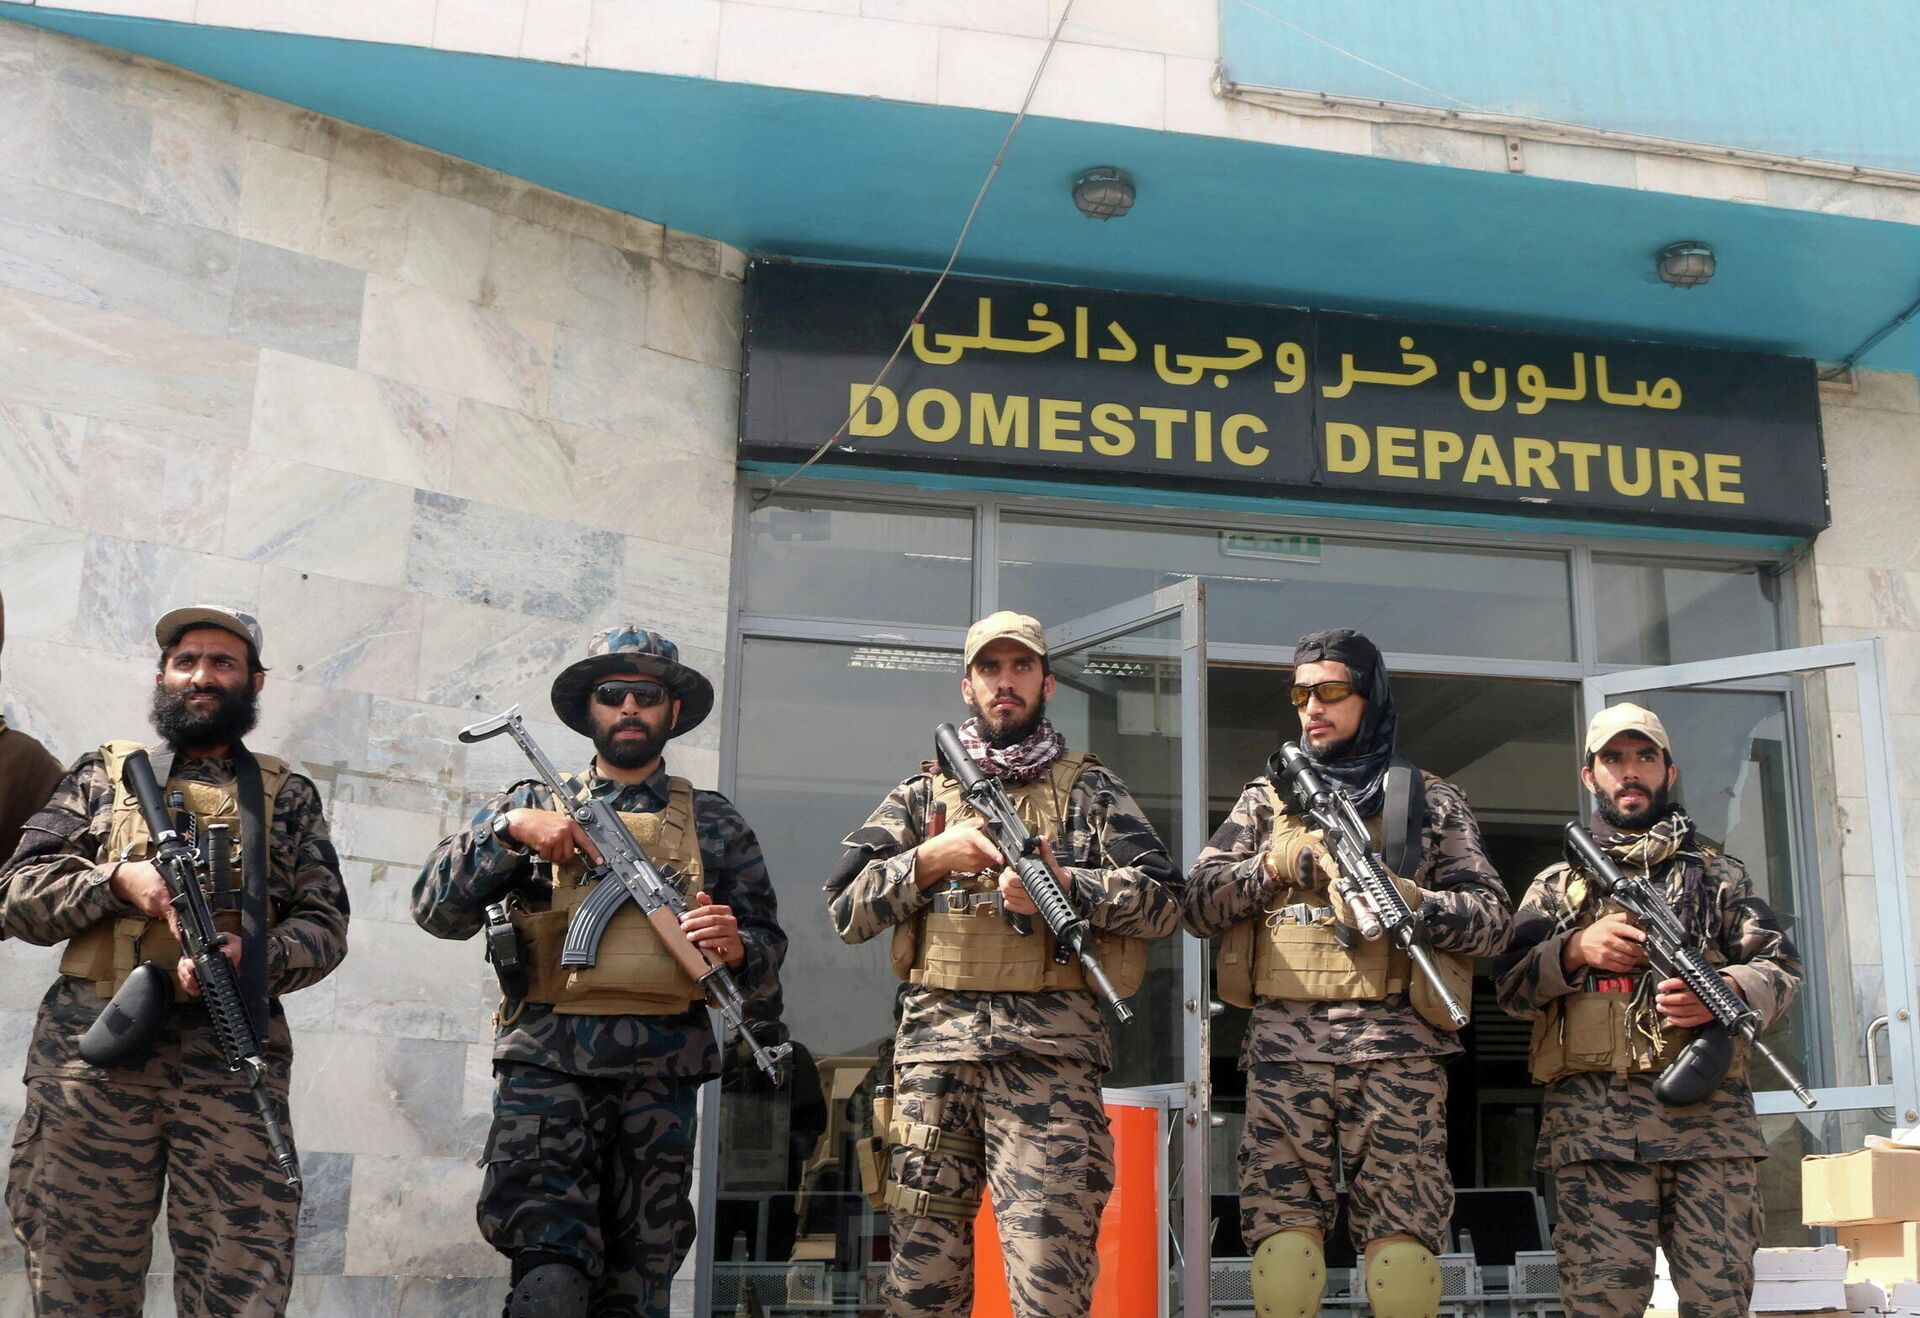 Taliban forces stand guard a day after the U.S. troops withdrawal from Hamid Karzai International Airport in Kabul, Afghanistan August 31, 2021. - Sputnik International, 1920, 17.09.2021